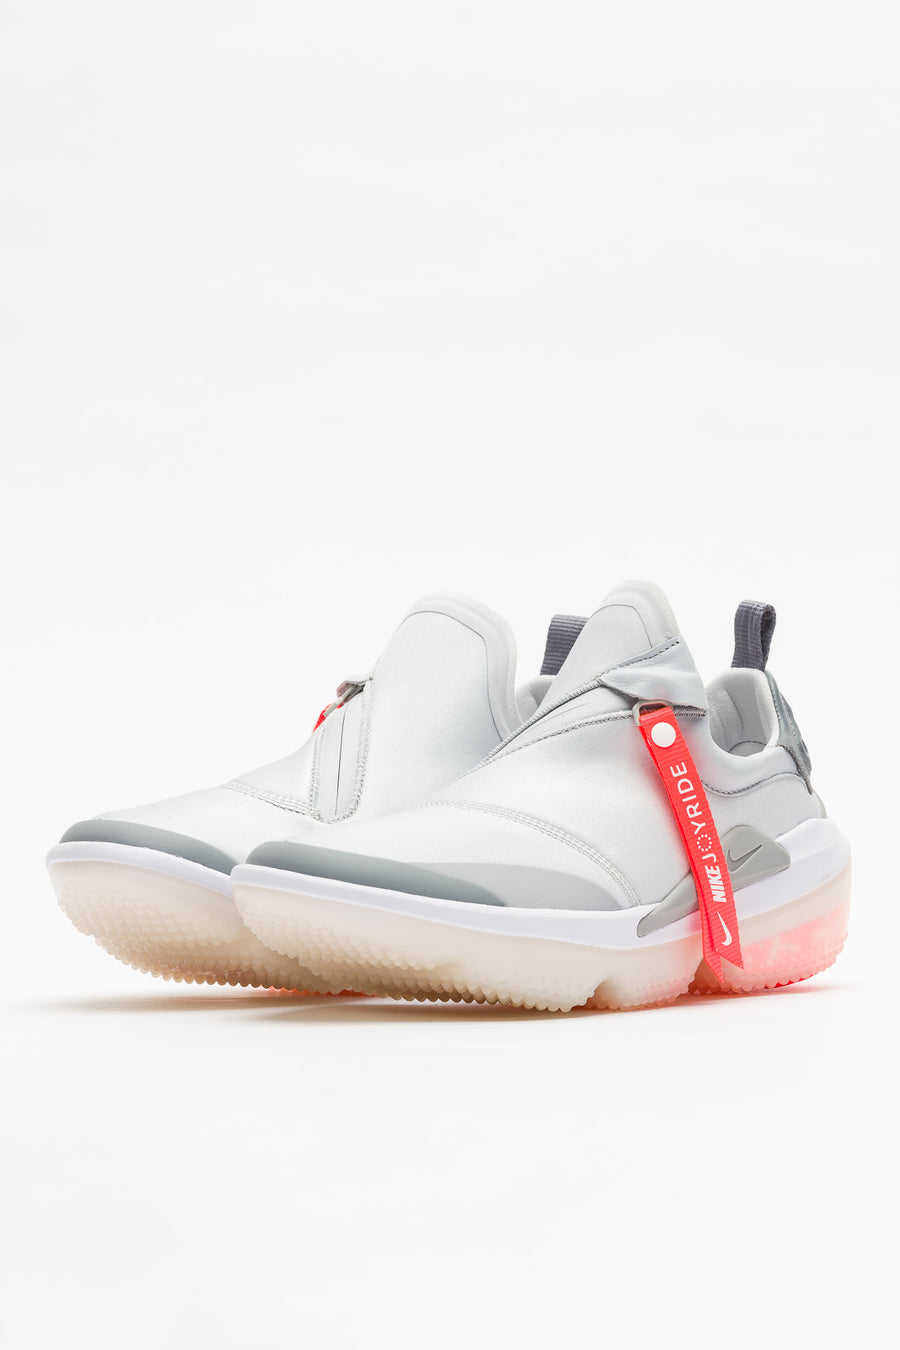 Nike Joyride Optik in Pure Platinum - Notre